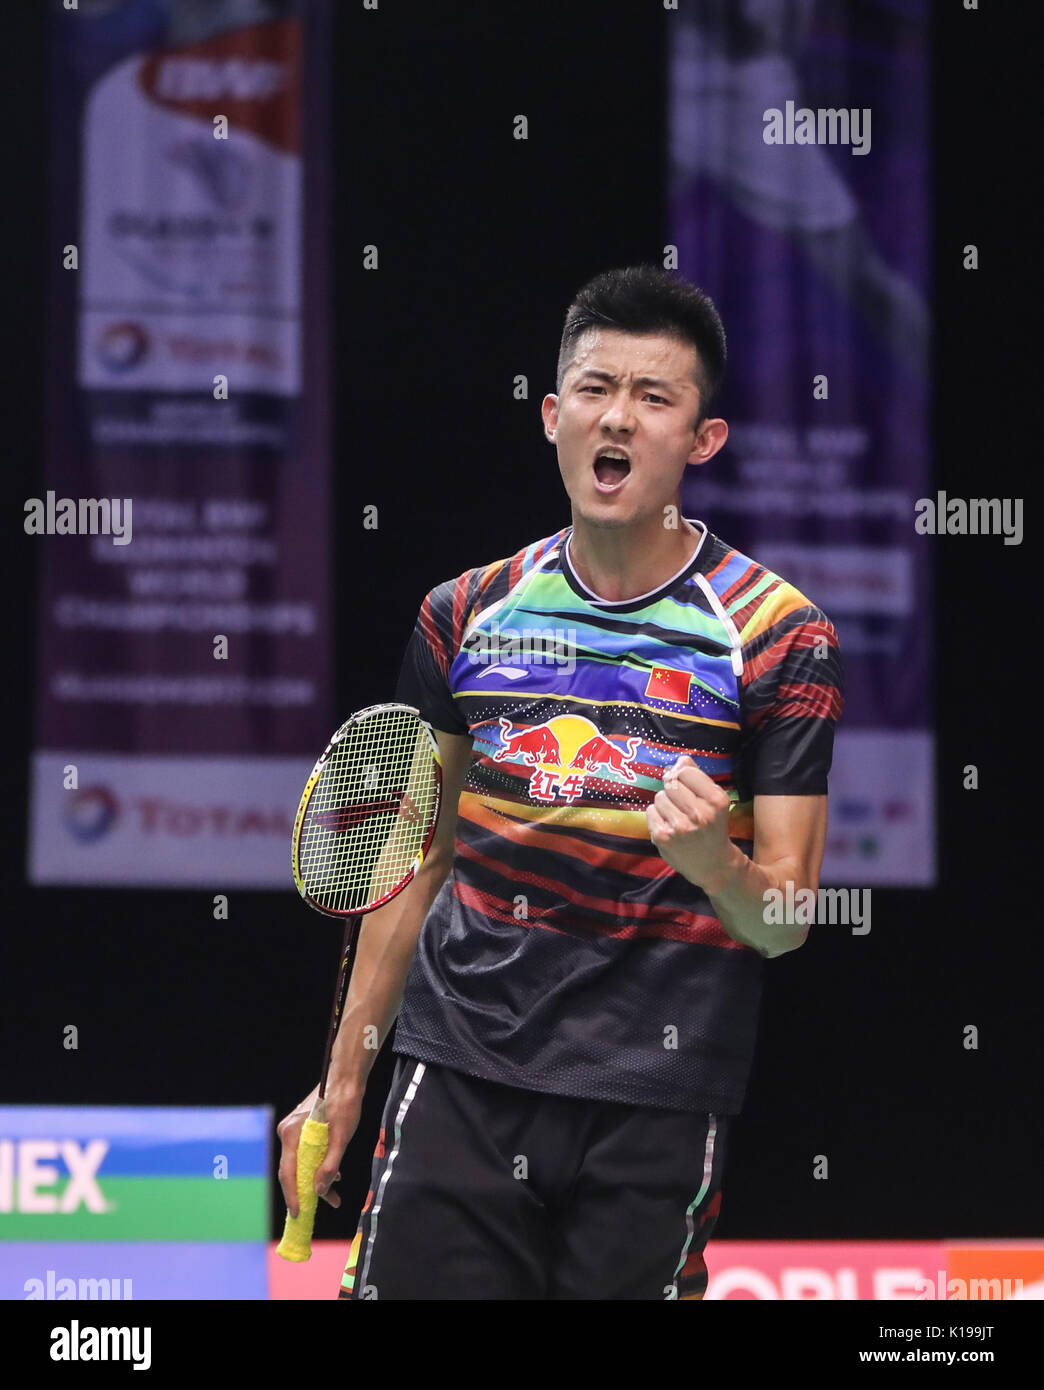 GLASGOW Aug 26 2017 Xinhua Chen Long of China